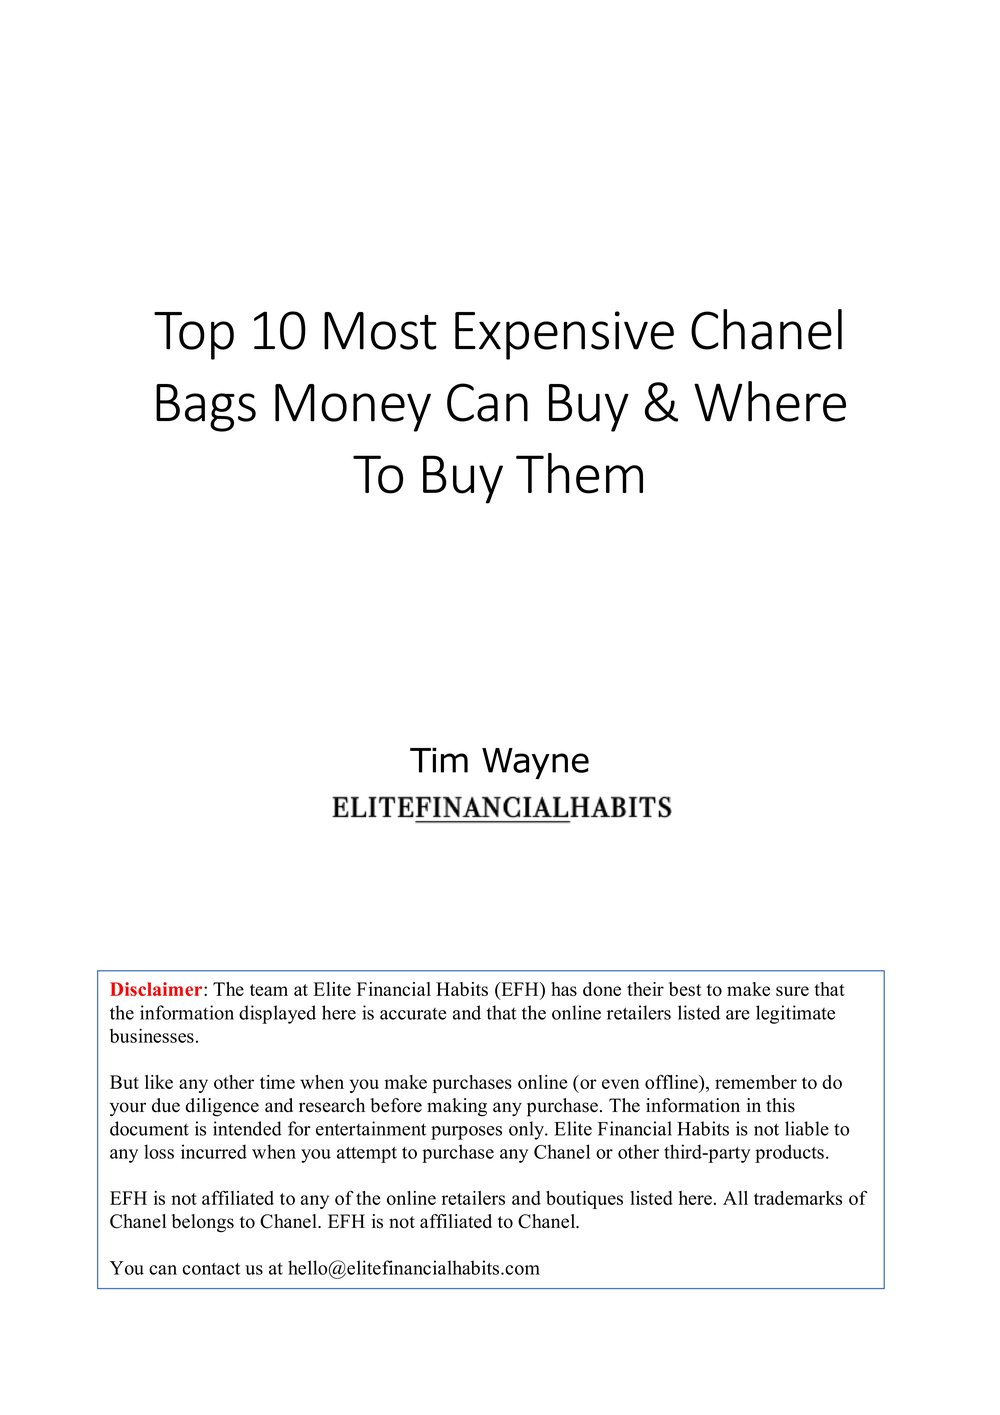 Top 10 Most Expensive Chanel Bags2.jpg